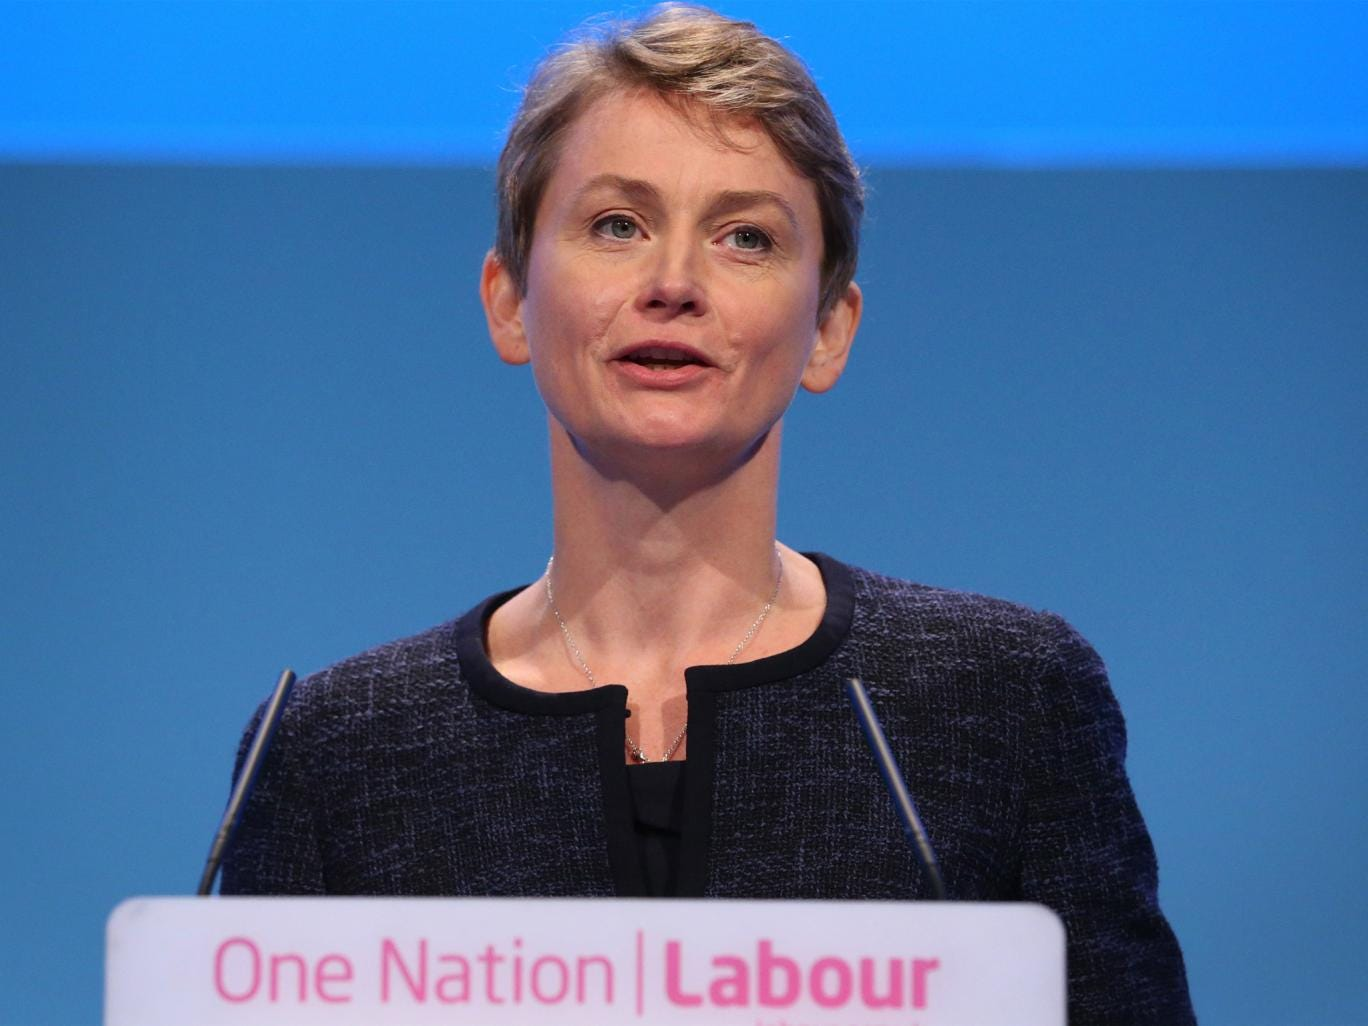 Yvette Cooper delivers her speech at the Labour Party conference